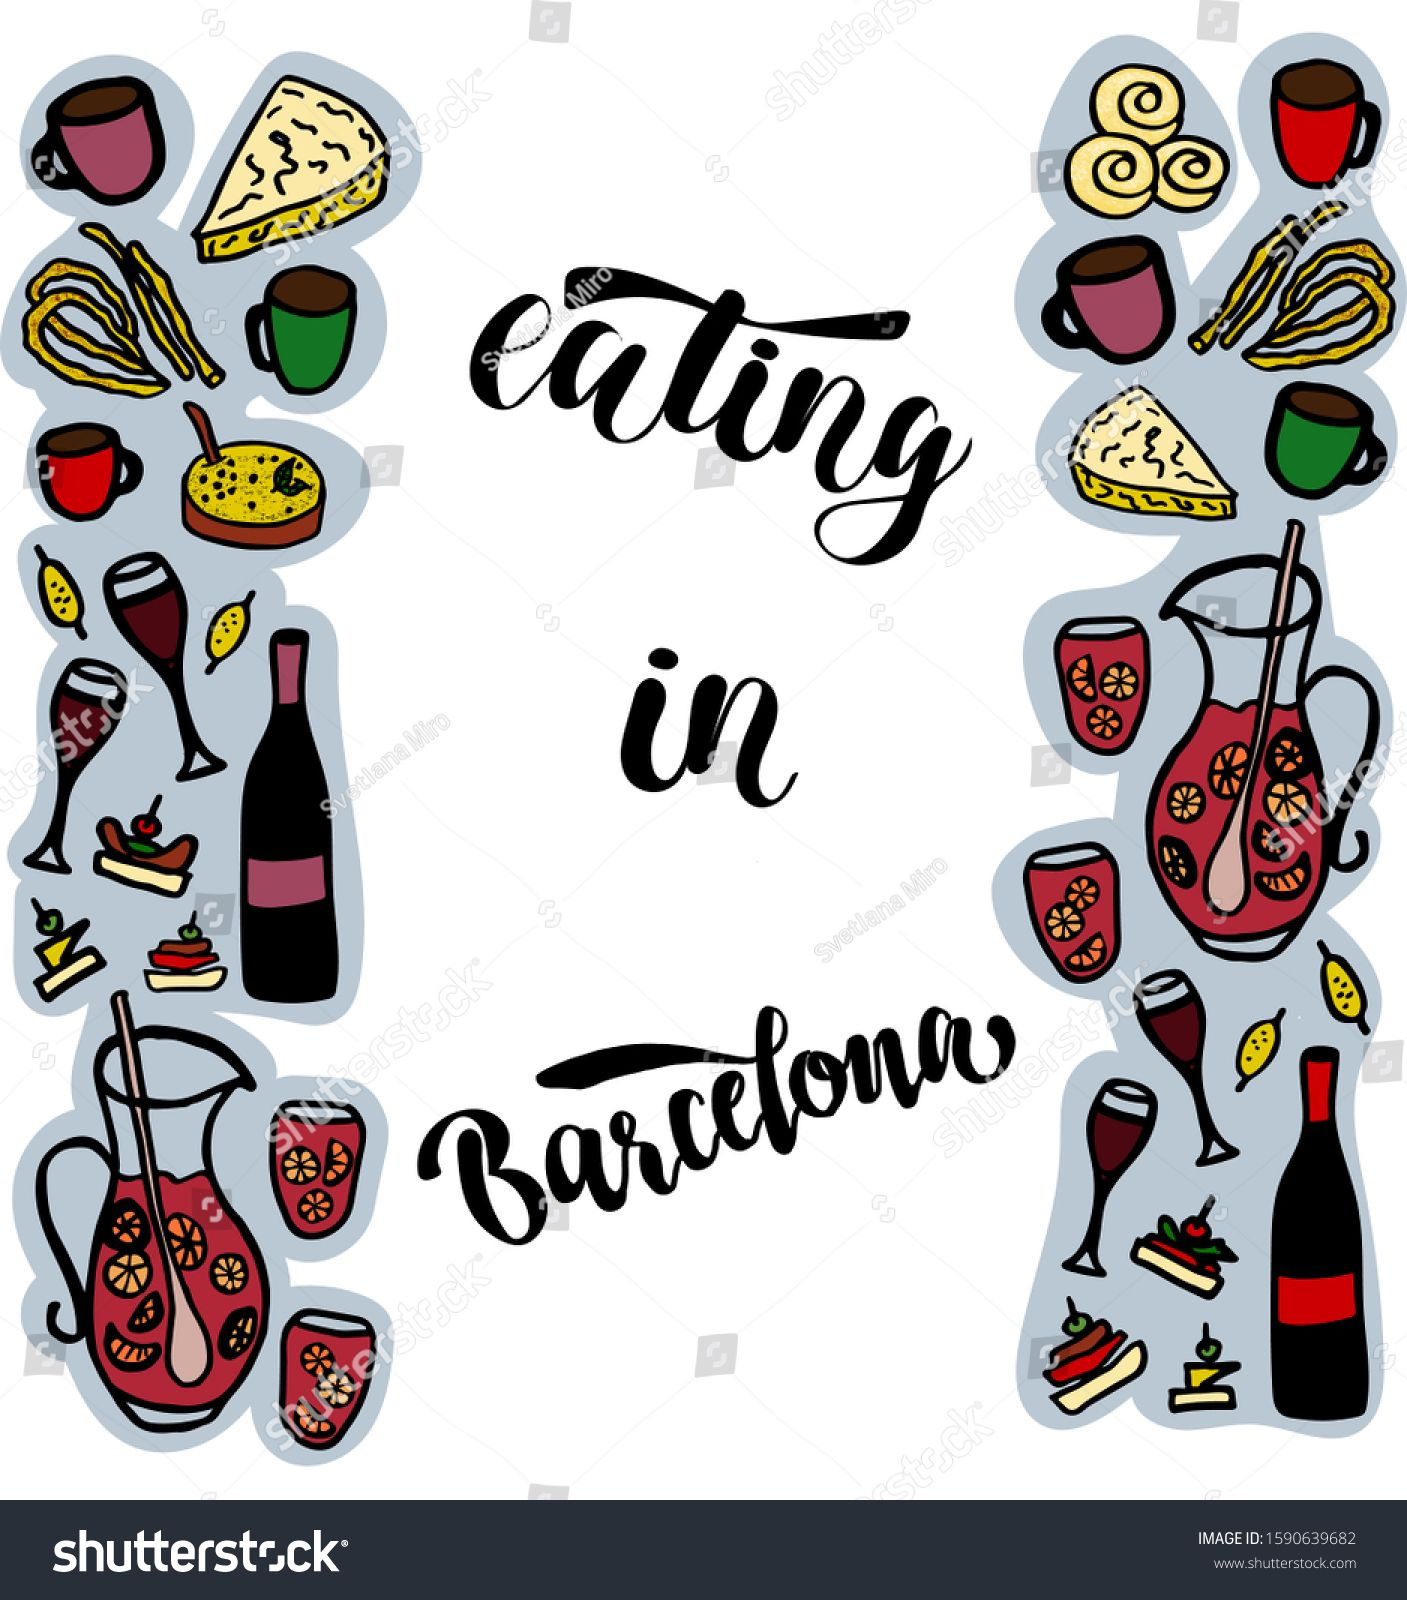 Vector Illustration Of Words Eating In Barcelona With The